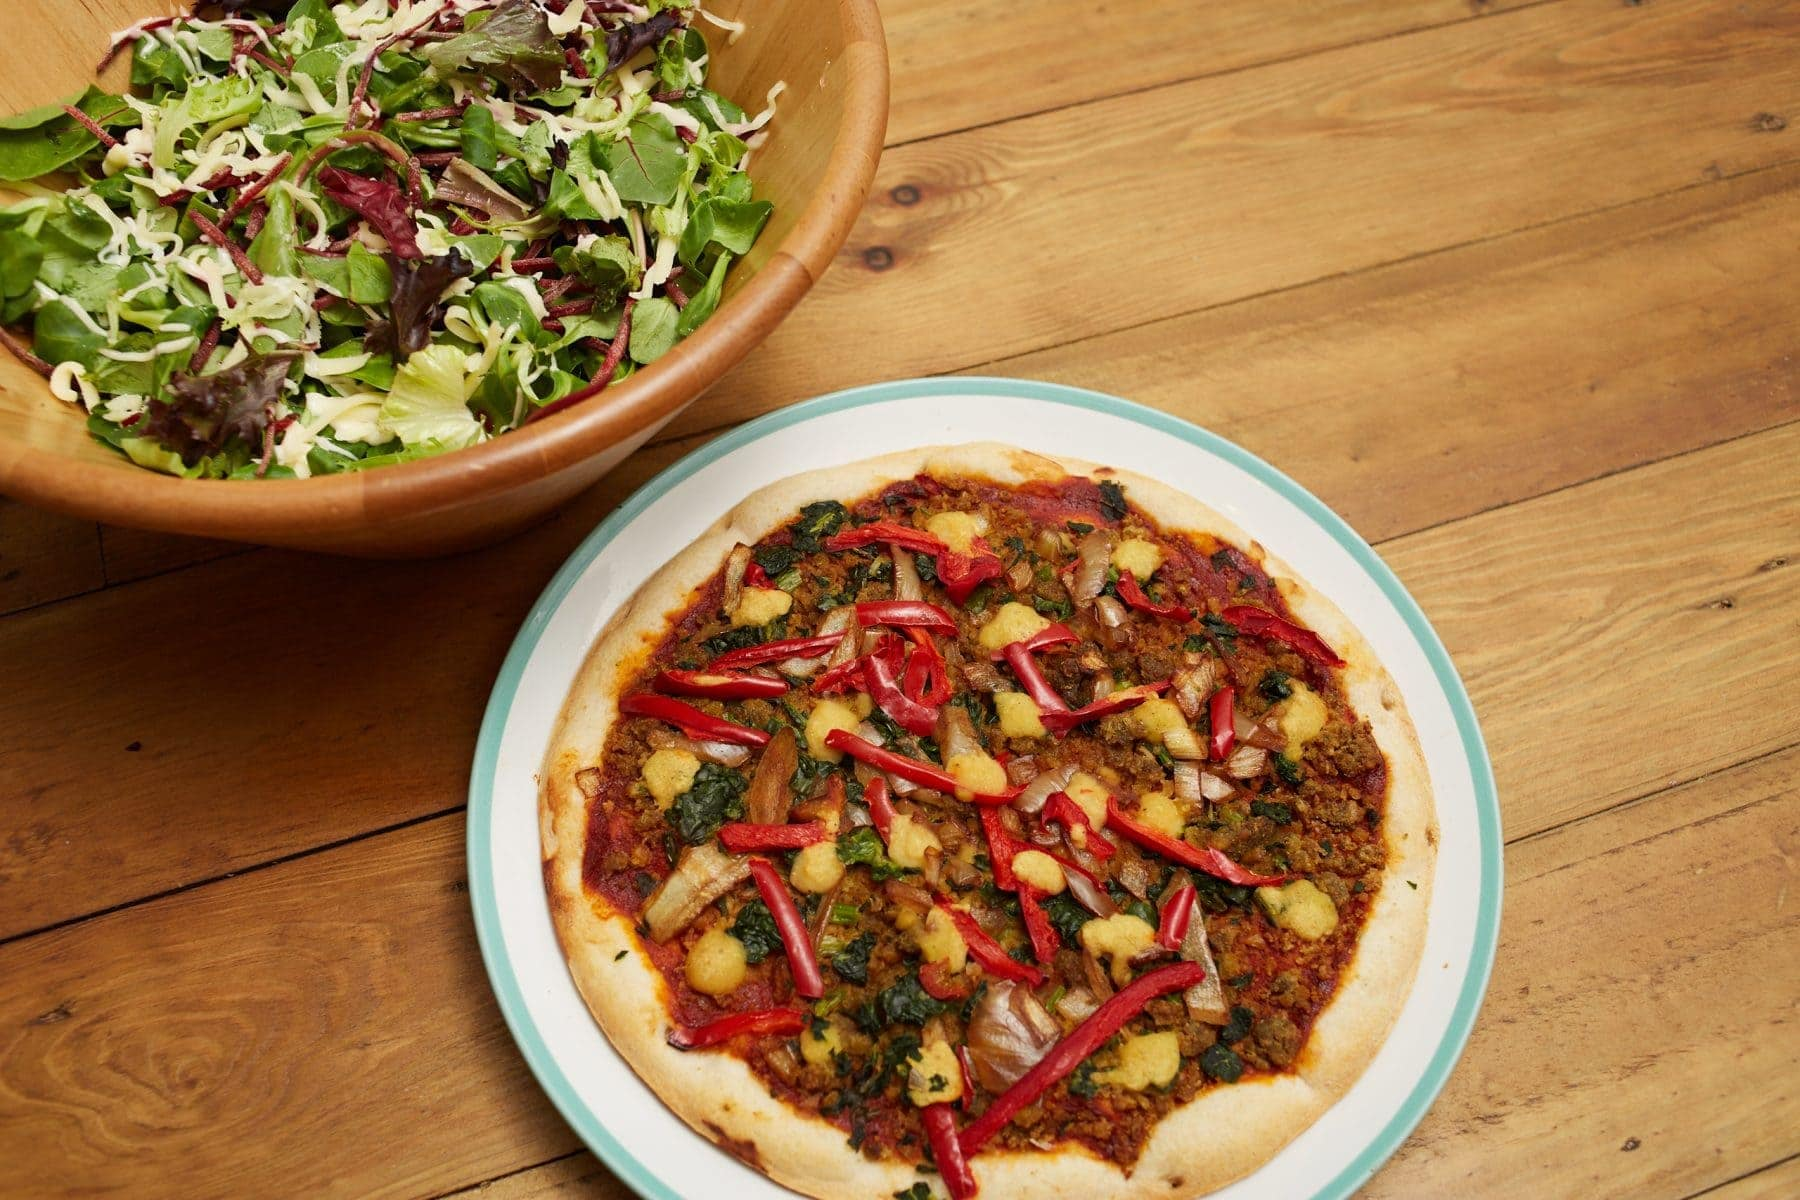 Goodfella's Launching New Frozen Vegan Pizza, Available in March 2018 2